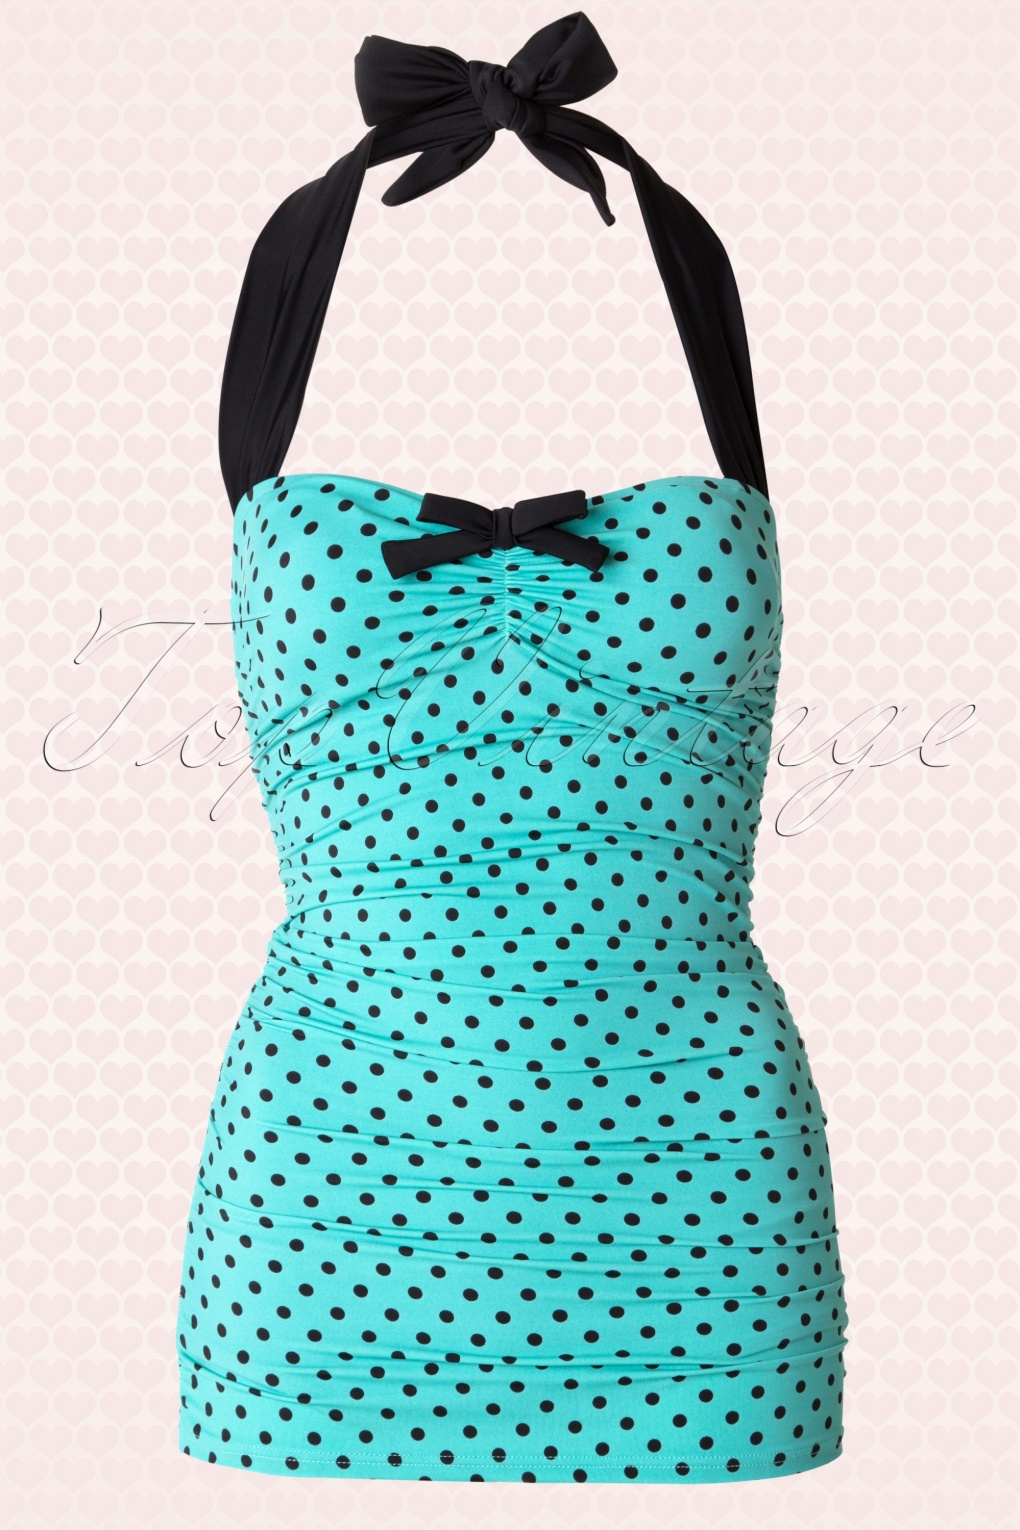 Vintage Inspired Retro Swimsuits 50s Rogues Polkadots Onepiece Swimsuit in Vintage Blue £38.46 AT vintagedancer.com